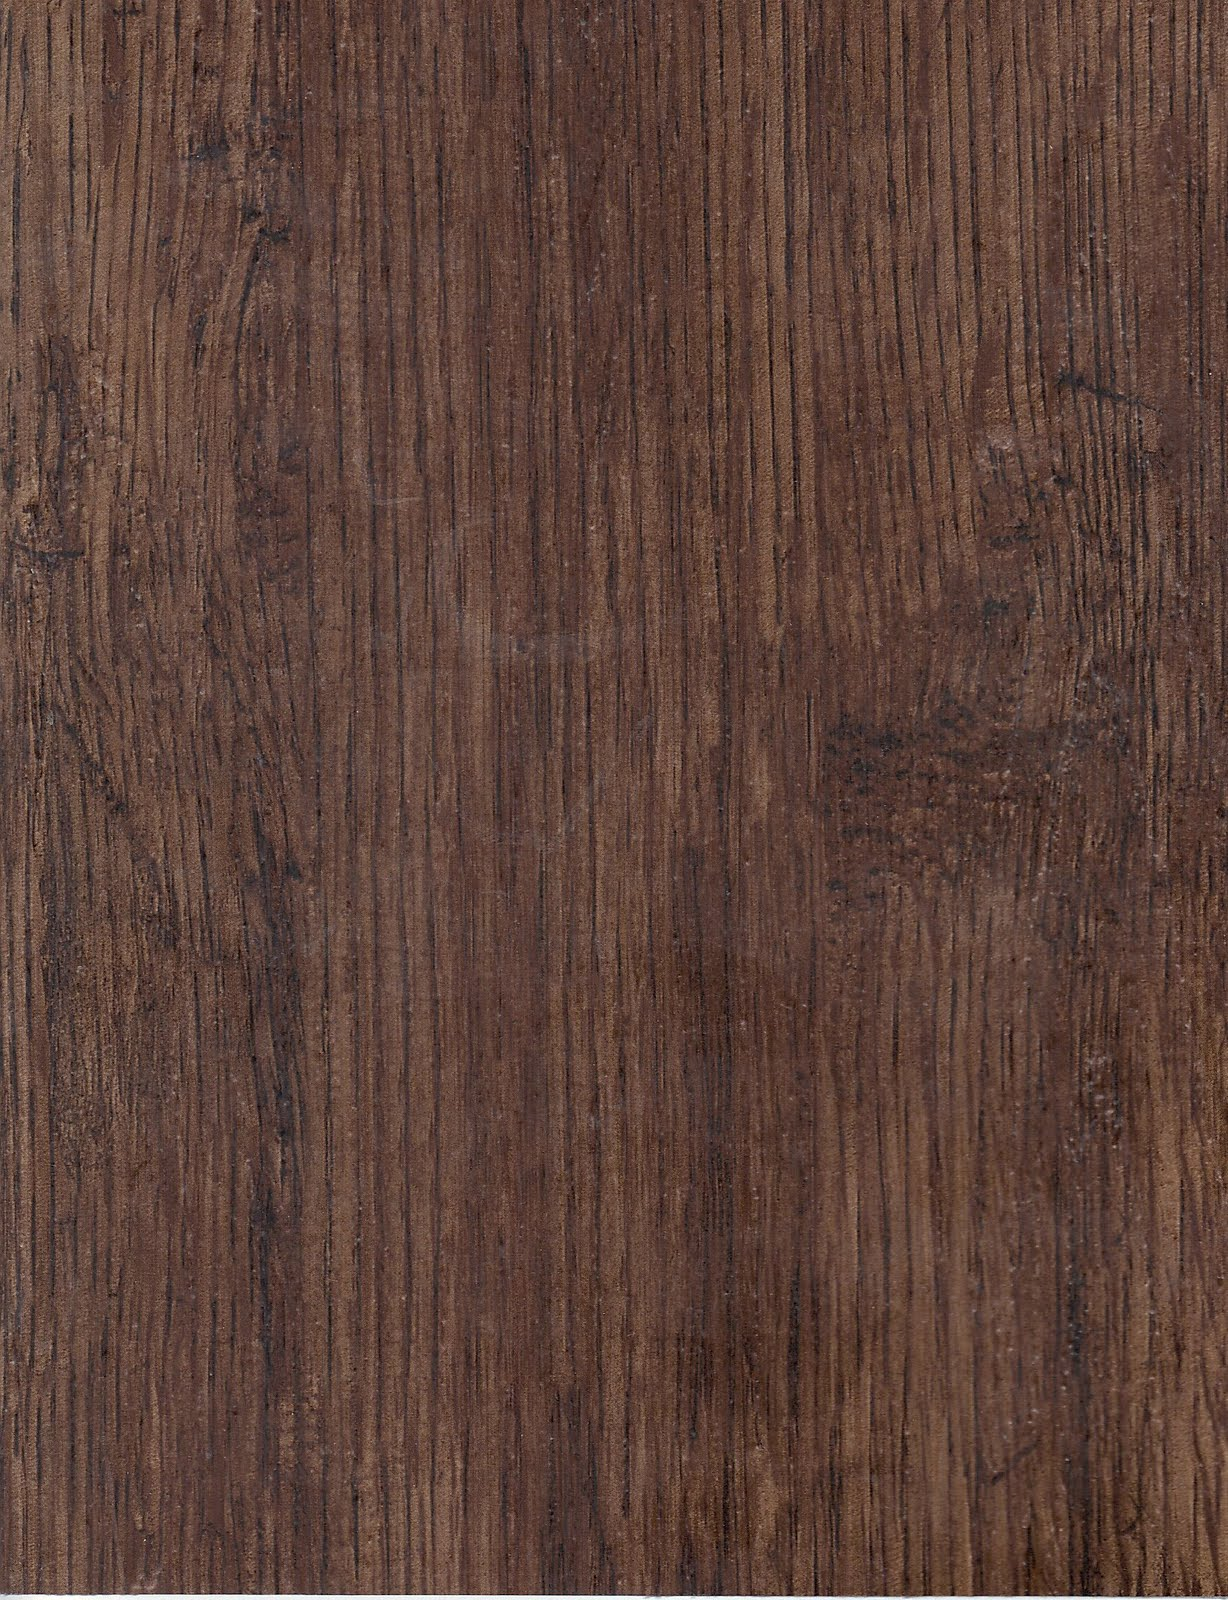 Wood flooring online vinyl plank flooring for Vinyl hardwood flooring